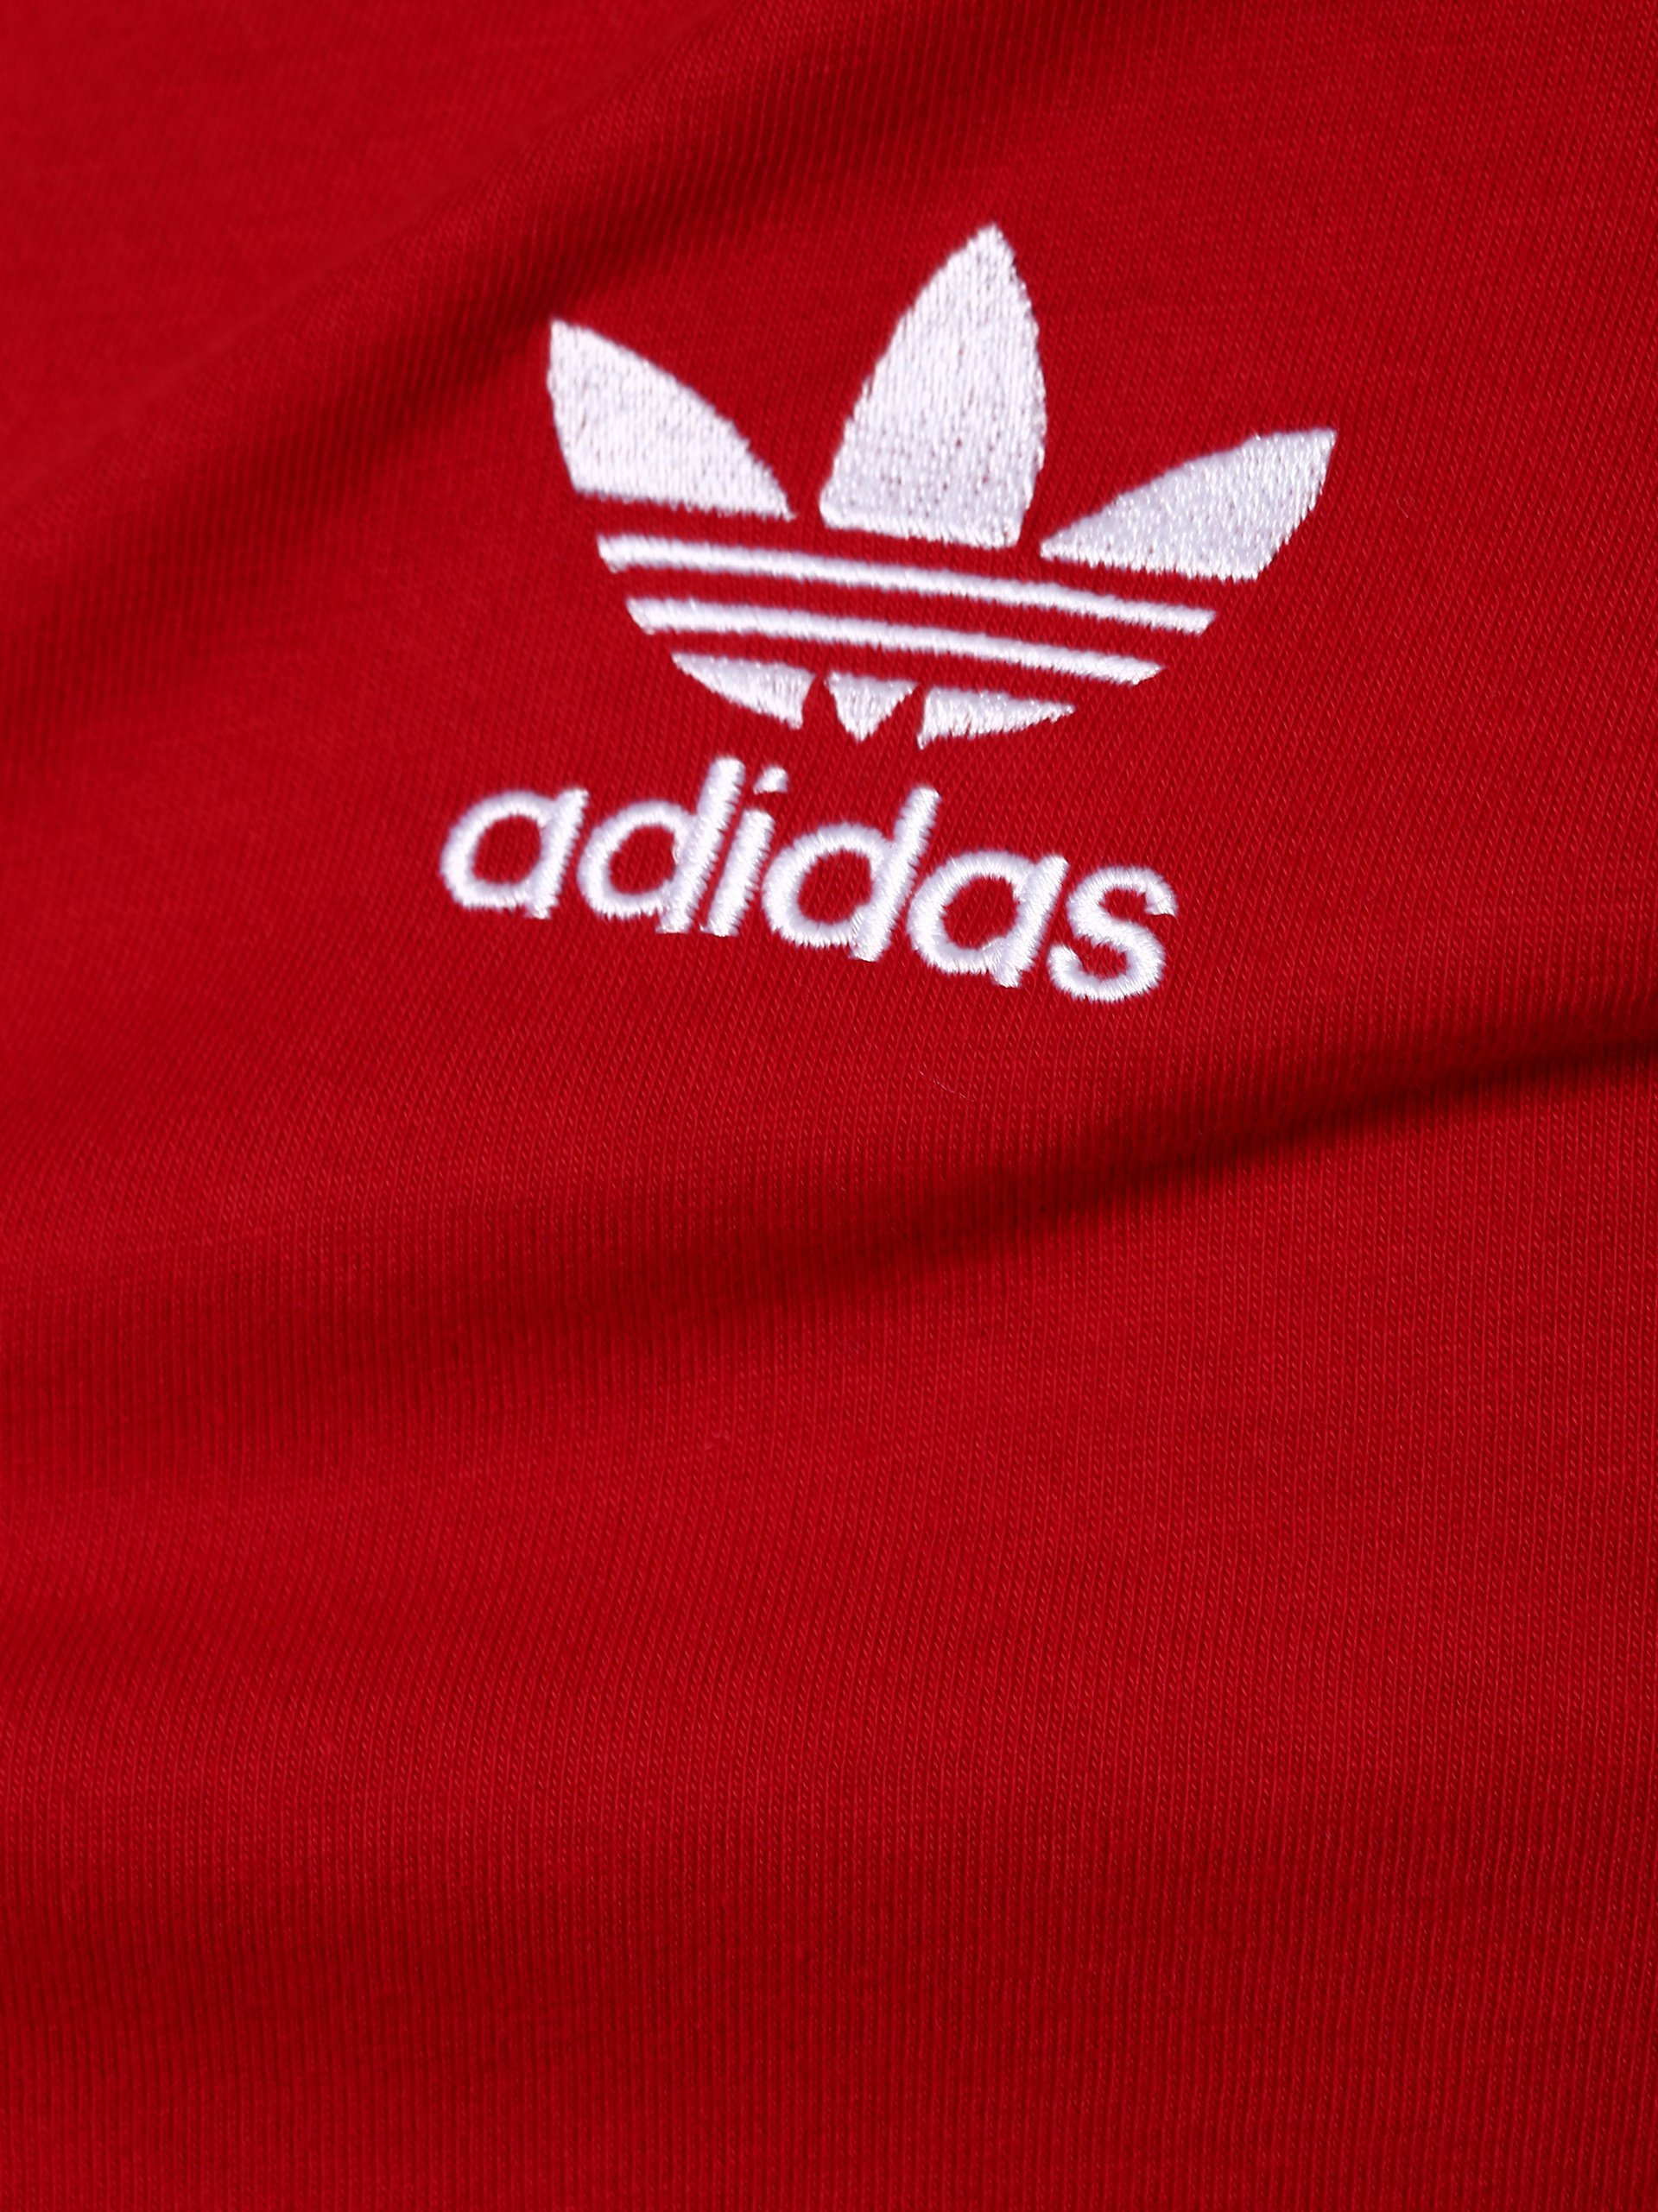 adidas Originals Herren T-Shirt